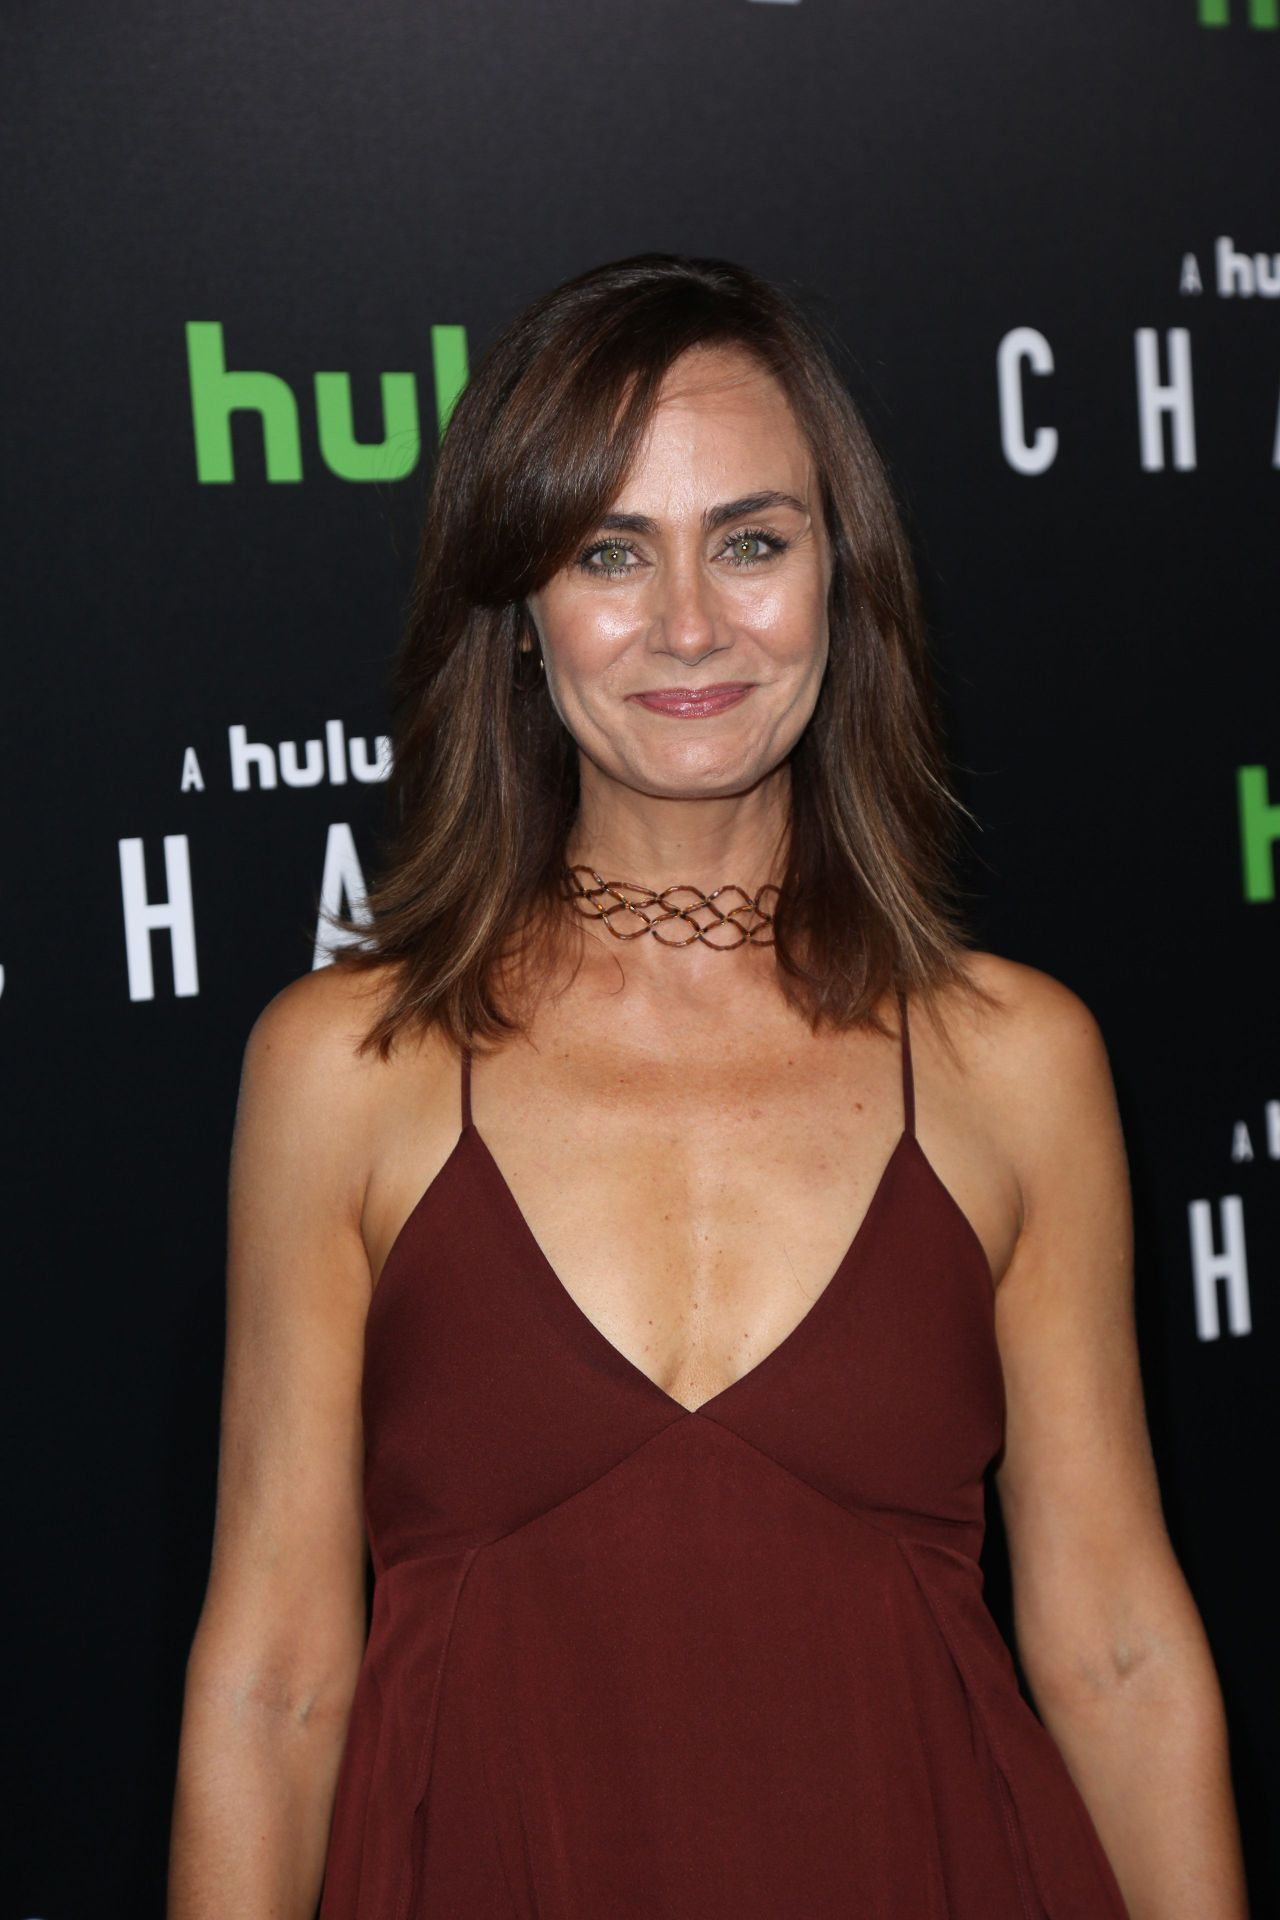 Celebrity Diane Farr nude (51 photos), Sexy, Cleavage, Selfie, braless 2020